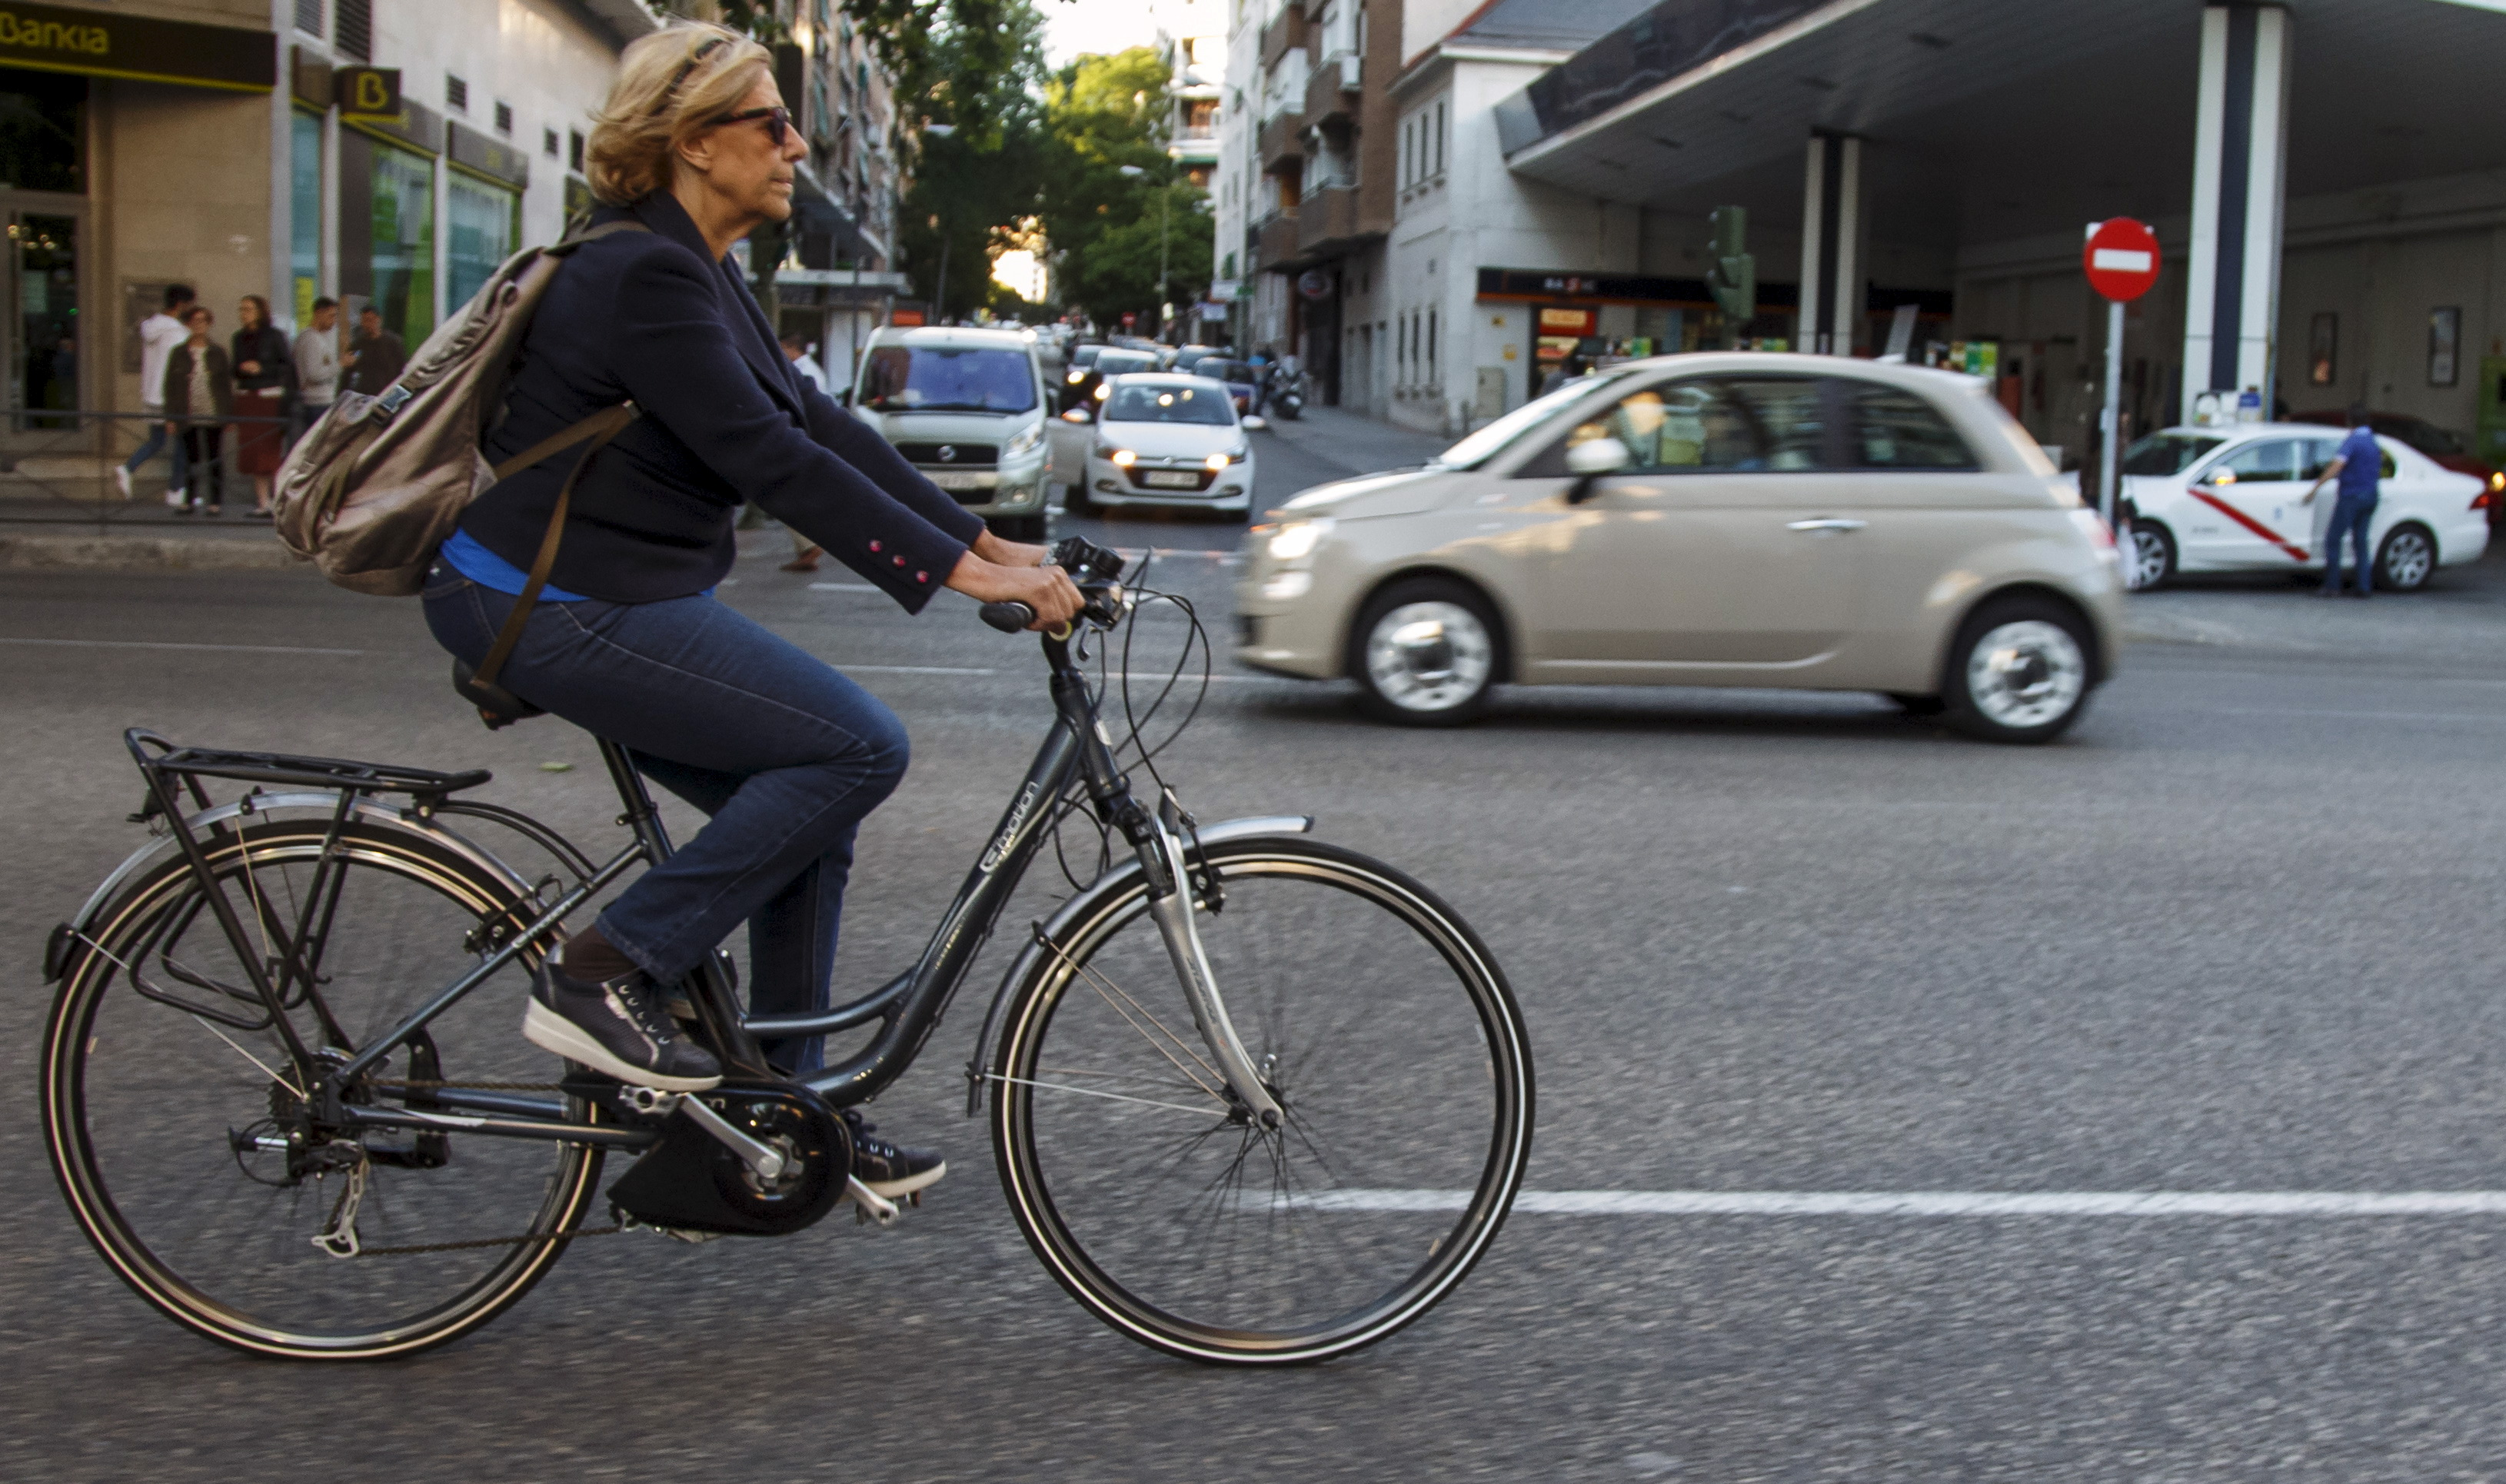 Carmena in her bycicle